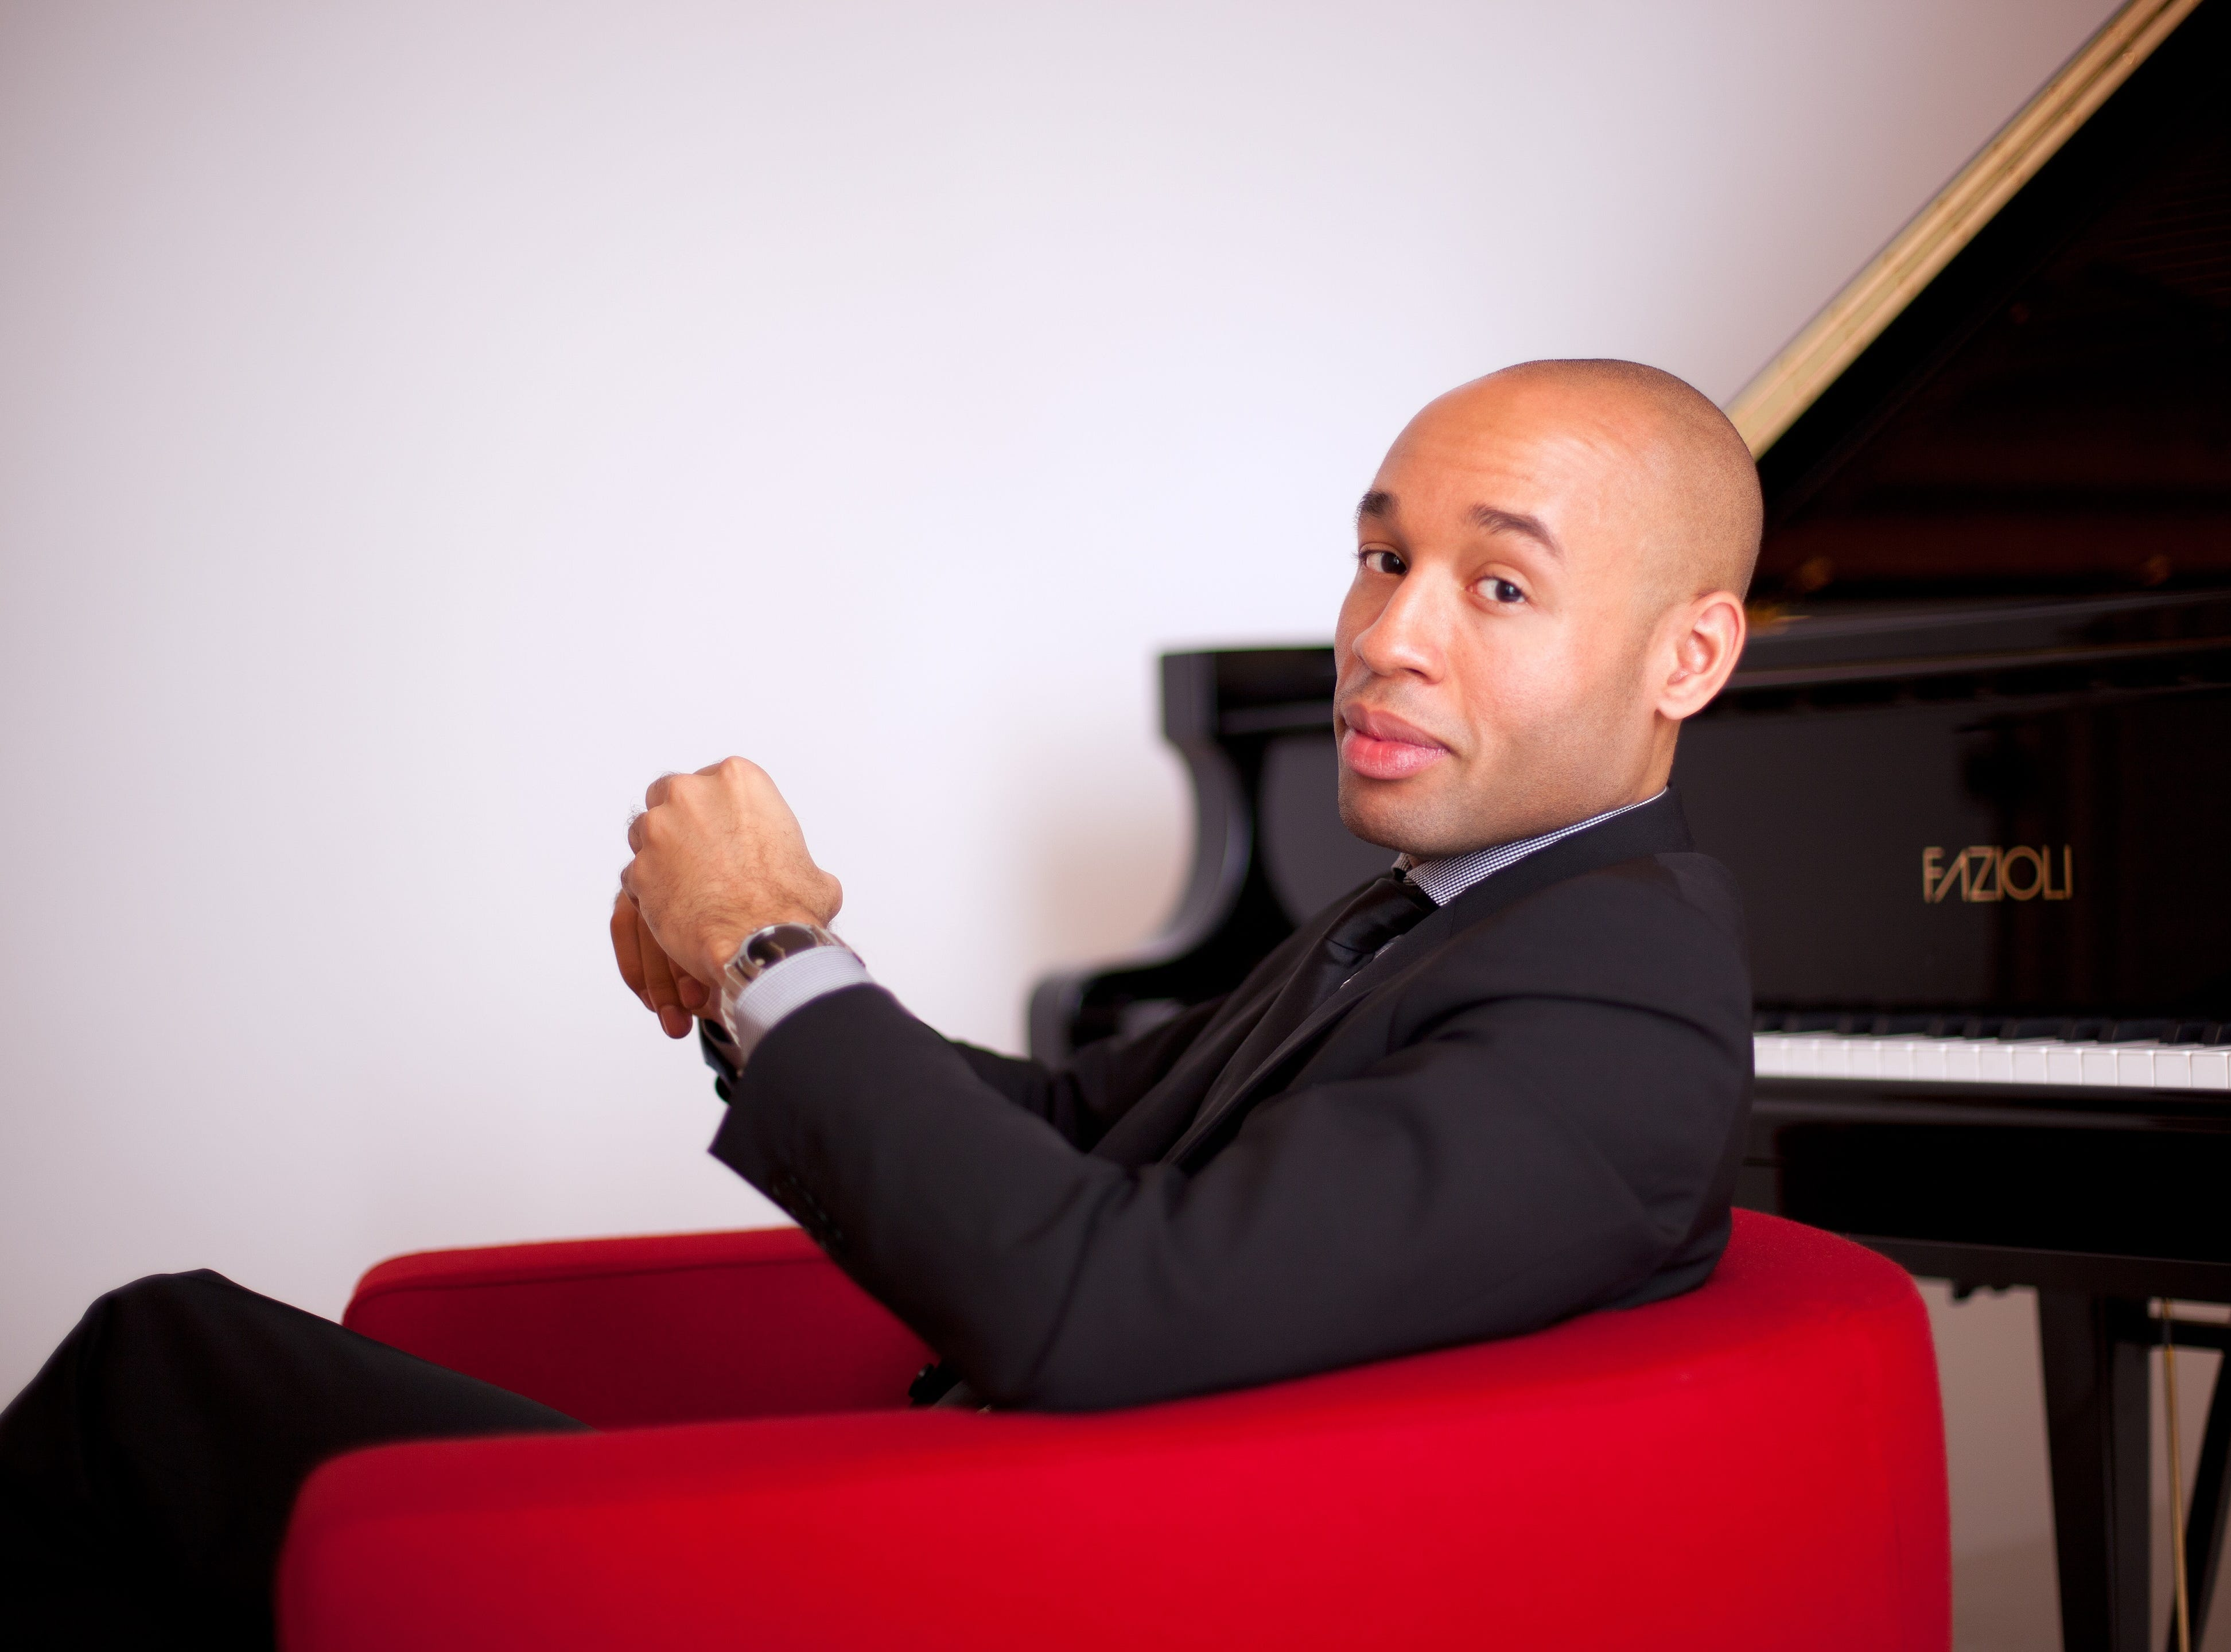 """Pianist Aaron Diehl makes his CSO debut playing Duke Ellington's """"New World A-Comin'."""" The work, which the CSO recorded with Ellington in 1970, will be performed as part of the orchestra's 125th Anniversary Celebration concert on Jan. 18-19, 2020."""